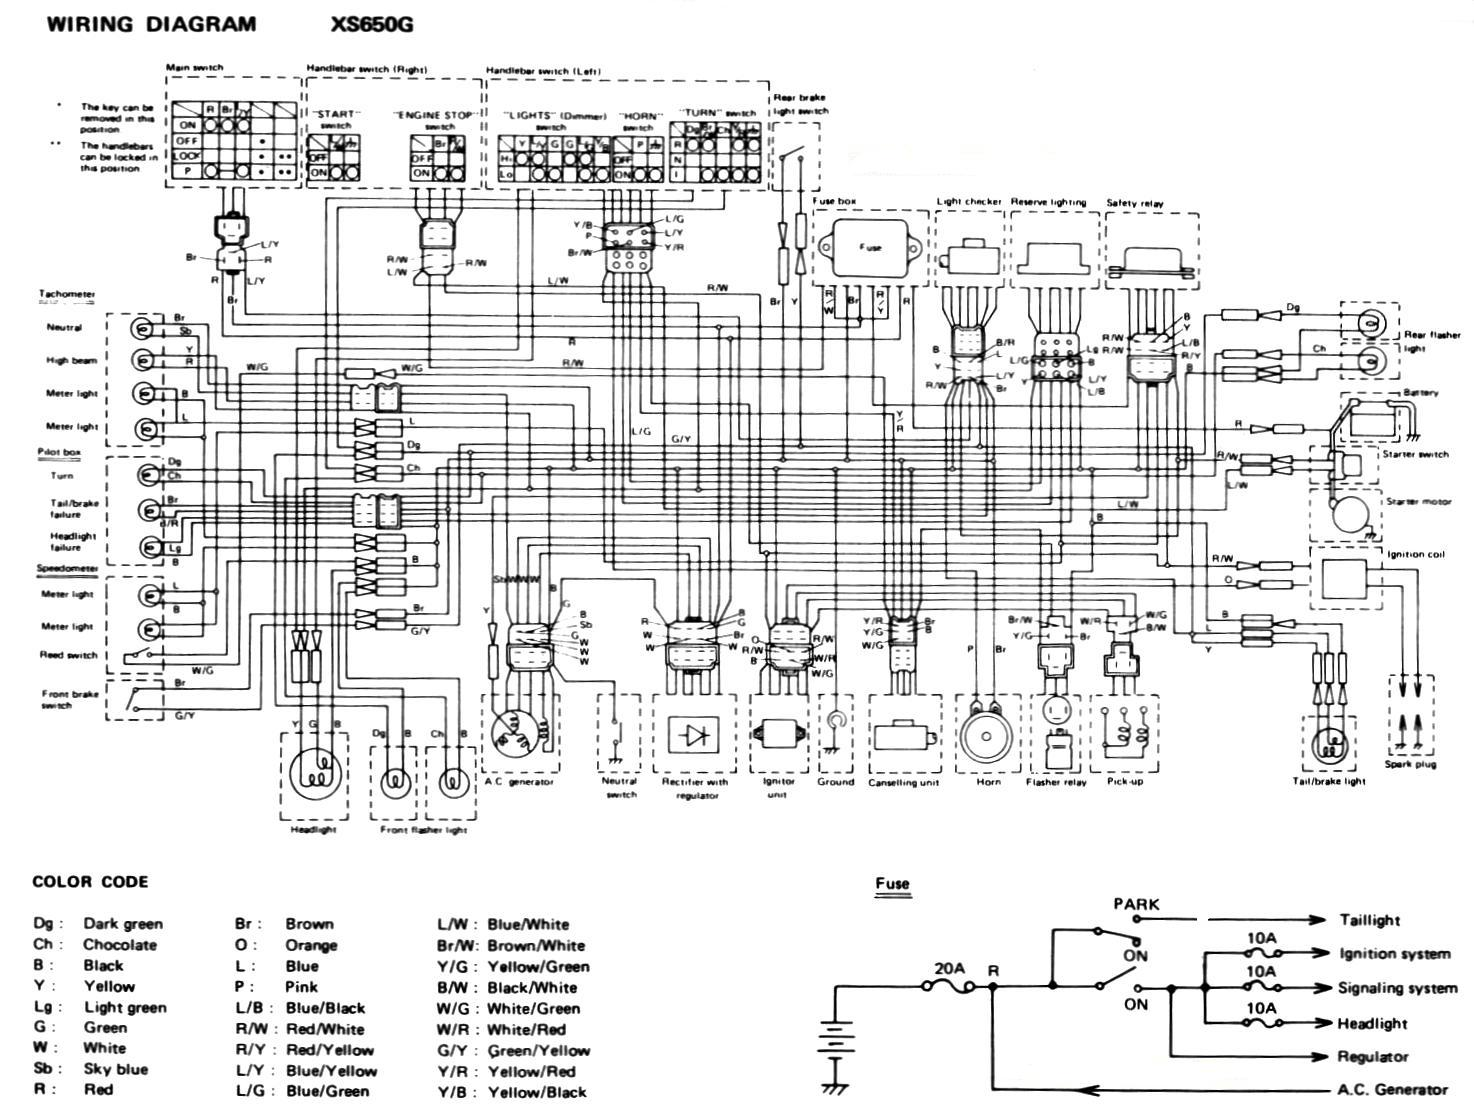 80XS650G yamaha xs650 wiring diagram yamaha xs650 ignition switch wiring  at readyjetset.co